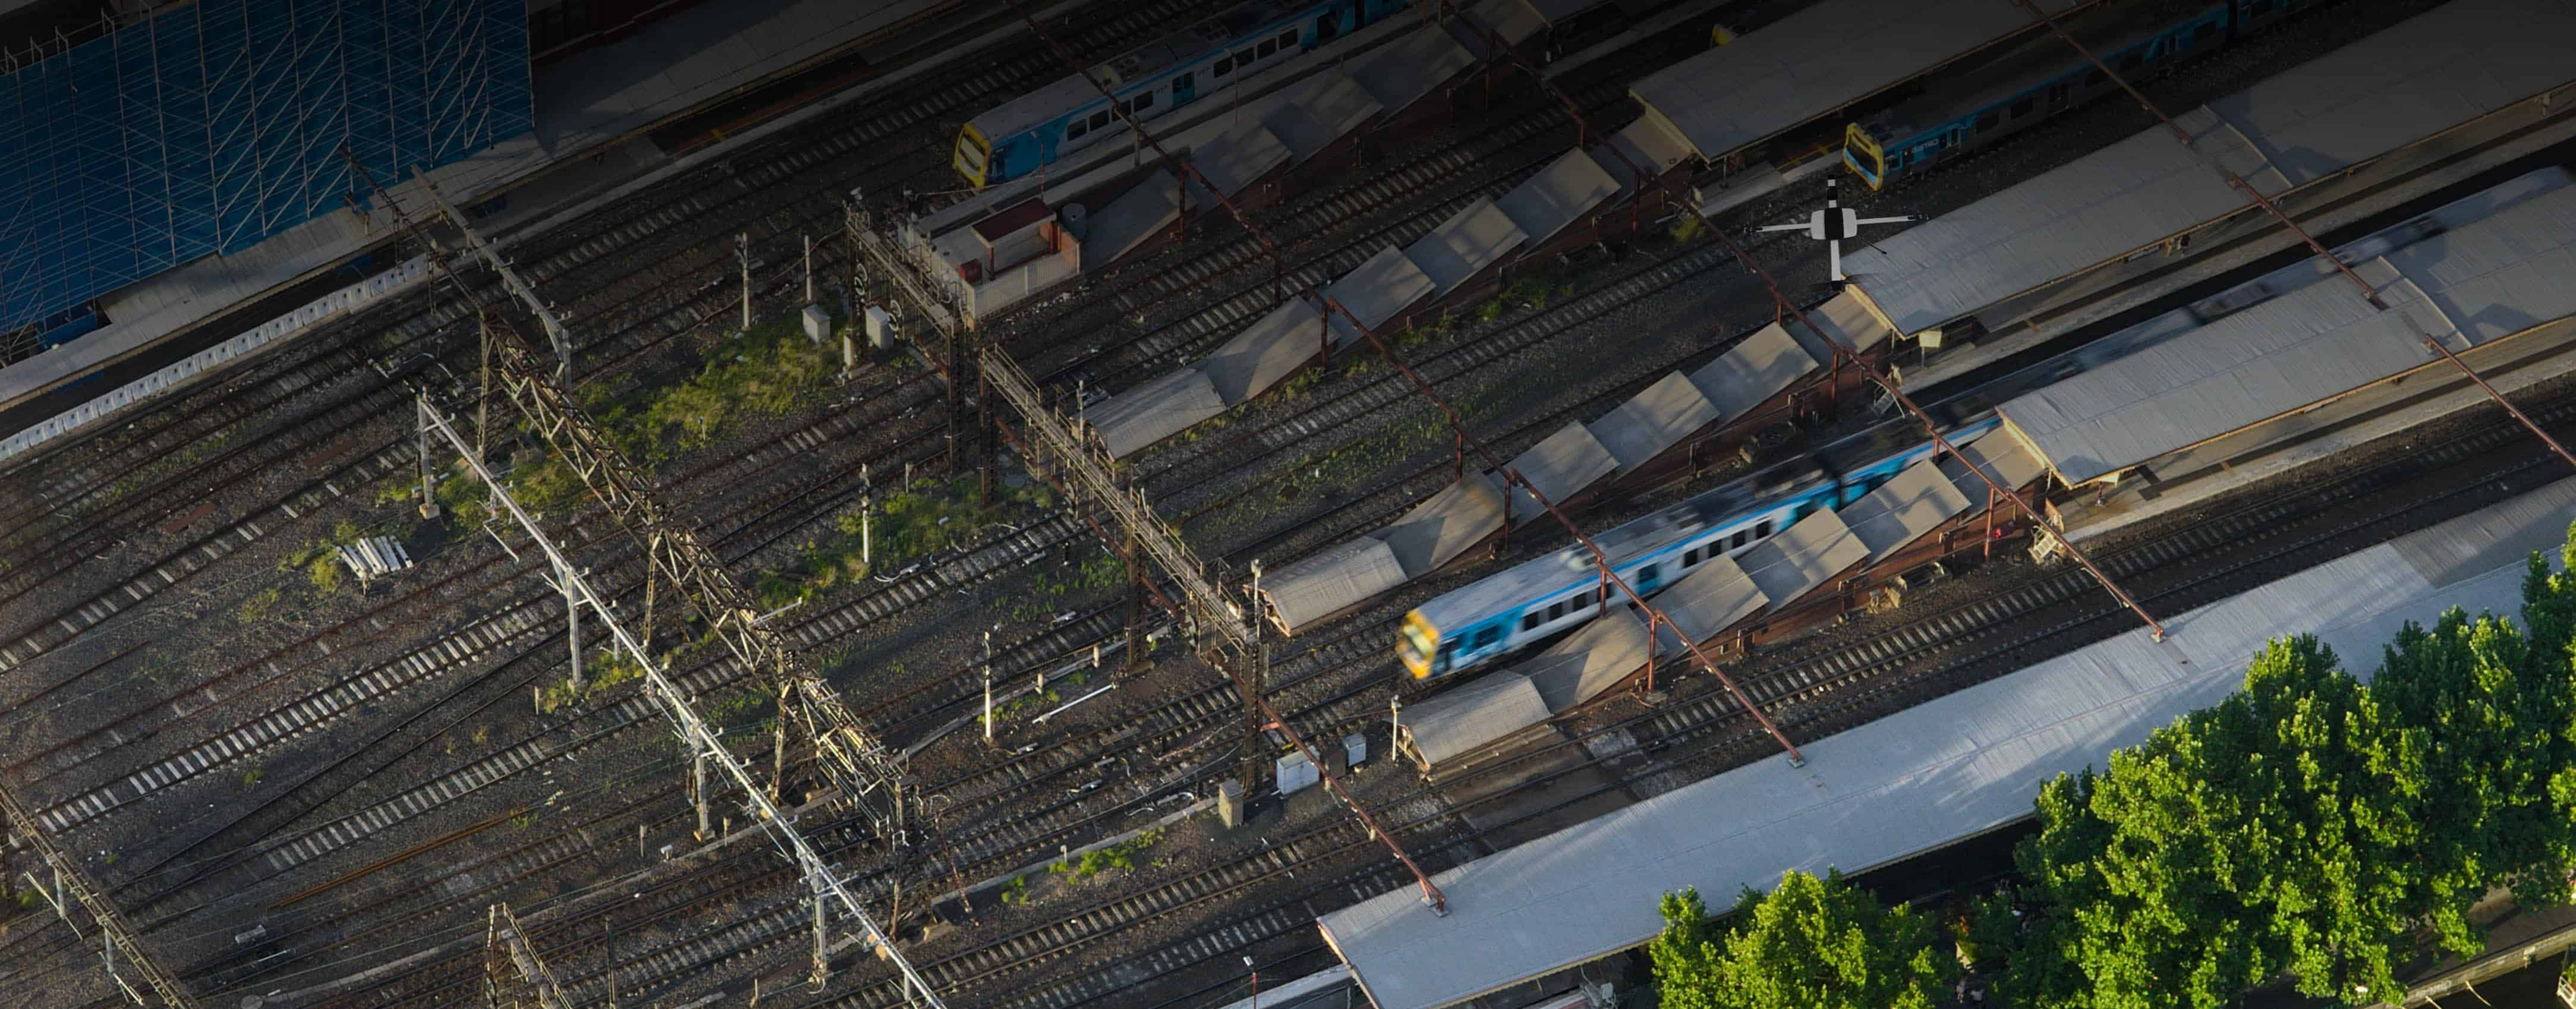 Drones For Railways Will Fast-track Everything: Here's How